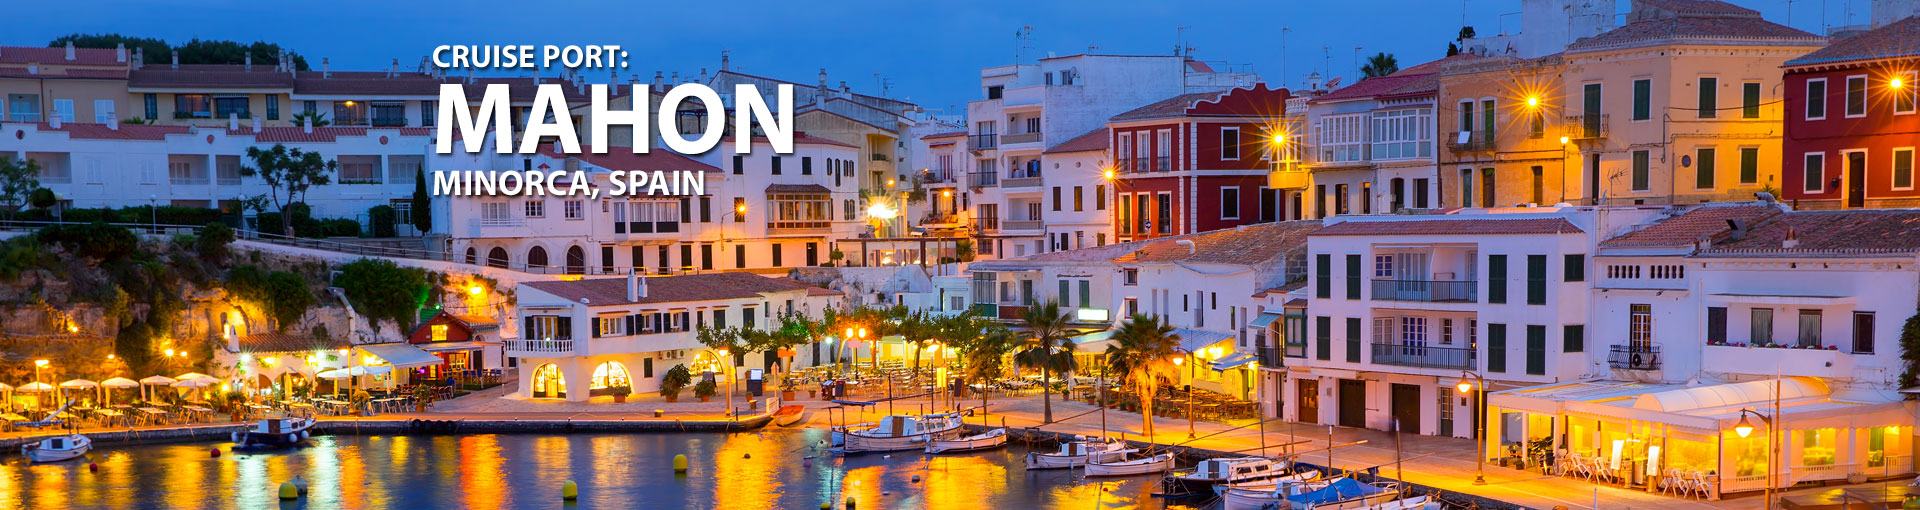 Cruises to Mahon, Minorca, Spain